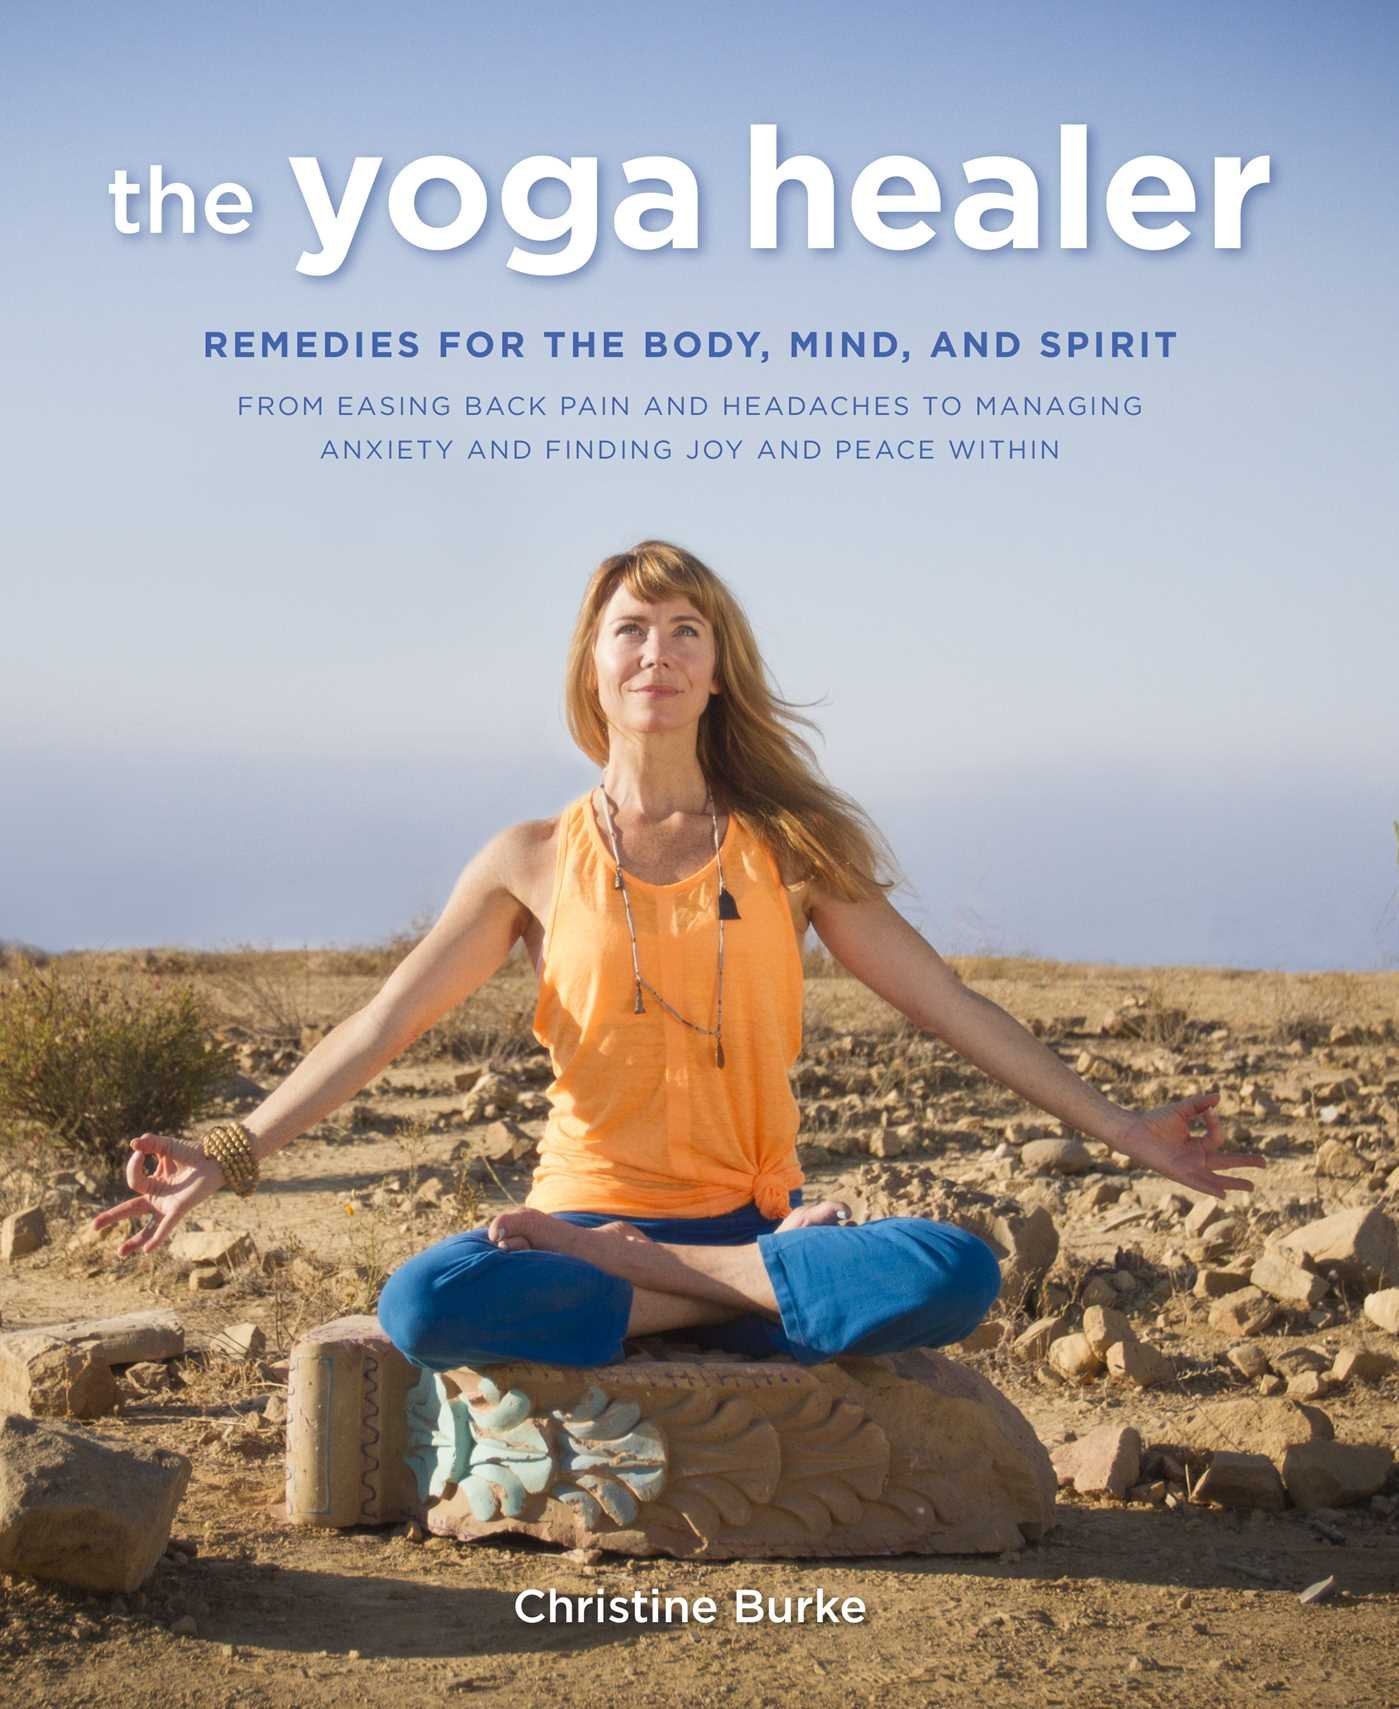 The Yoga Healer by Christine Burke